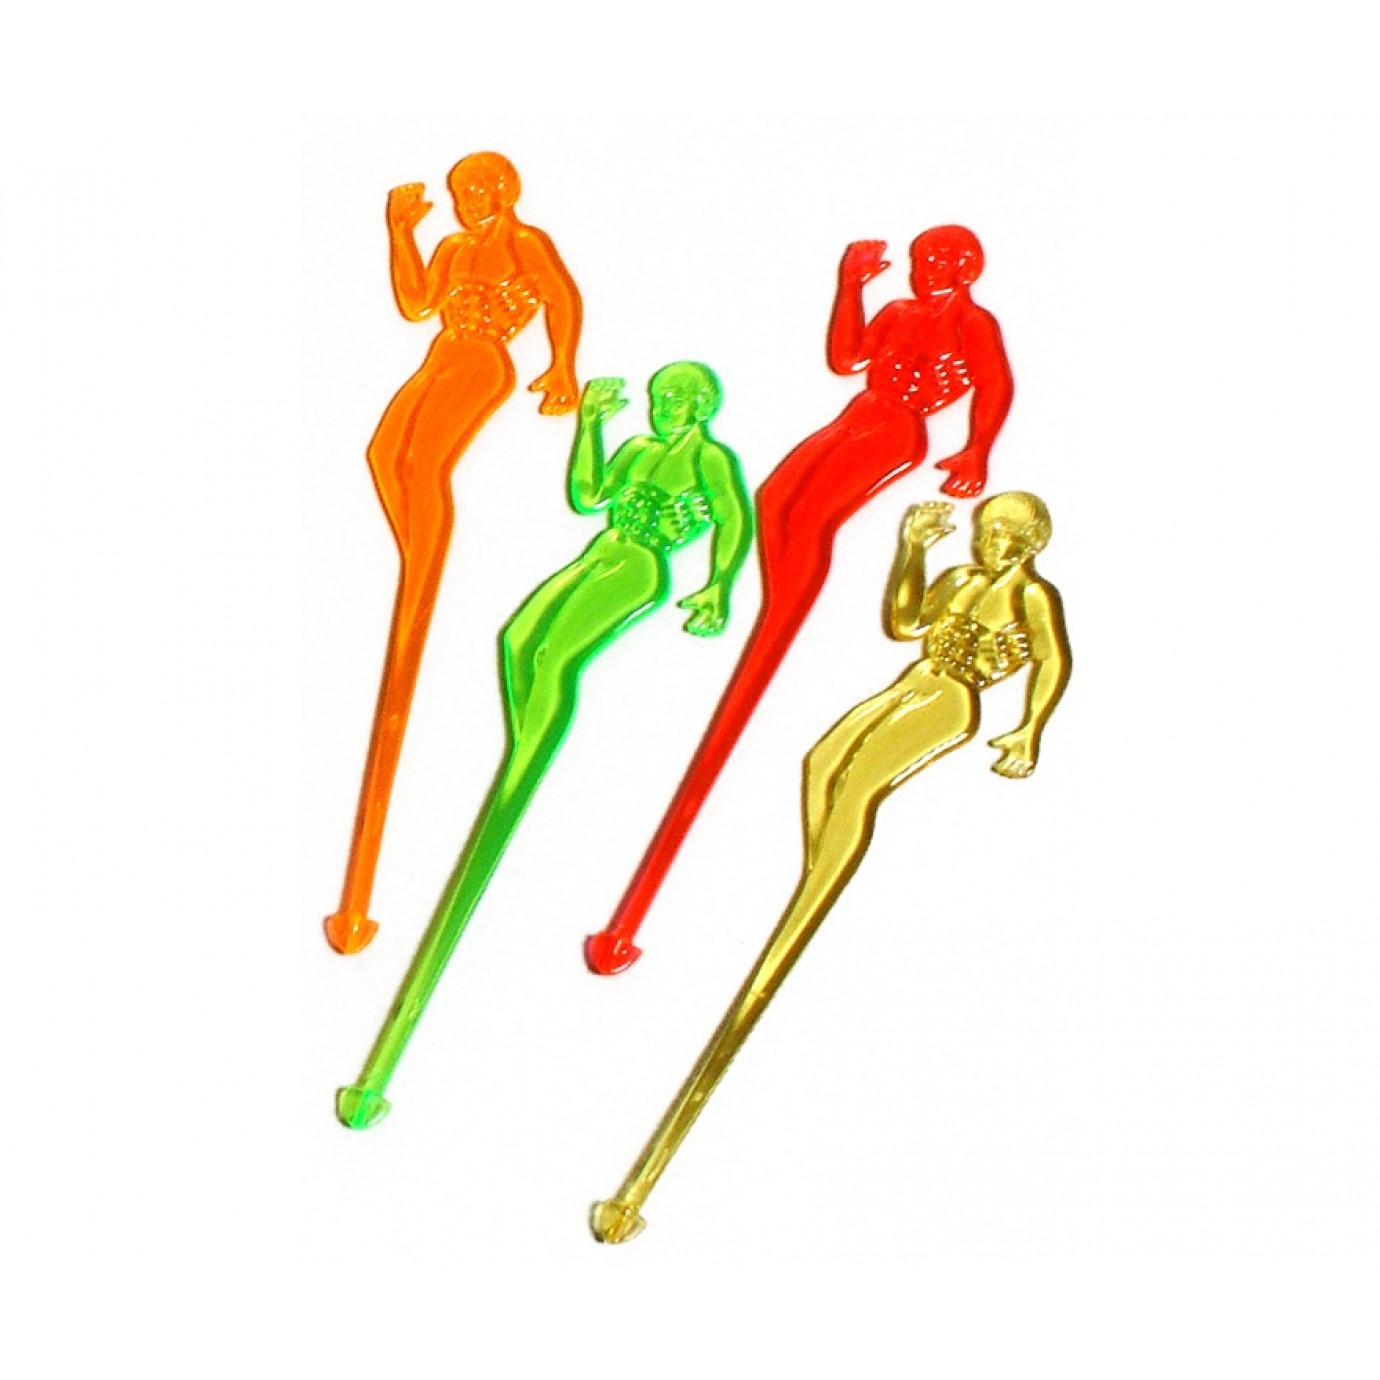 Drink Stirrers Naked Men 10 Pk Catering Supplies